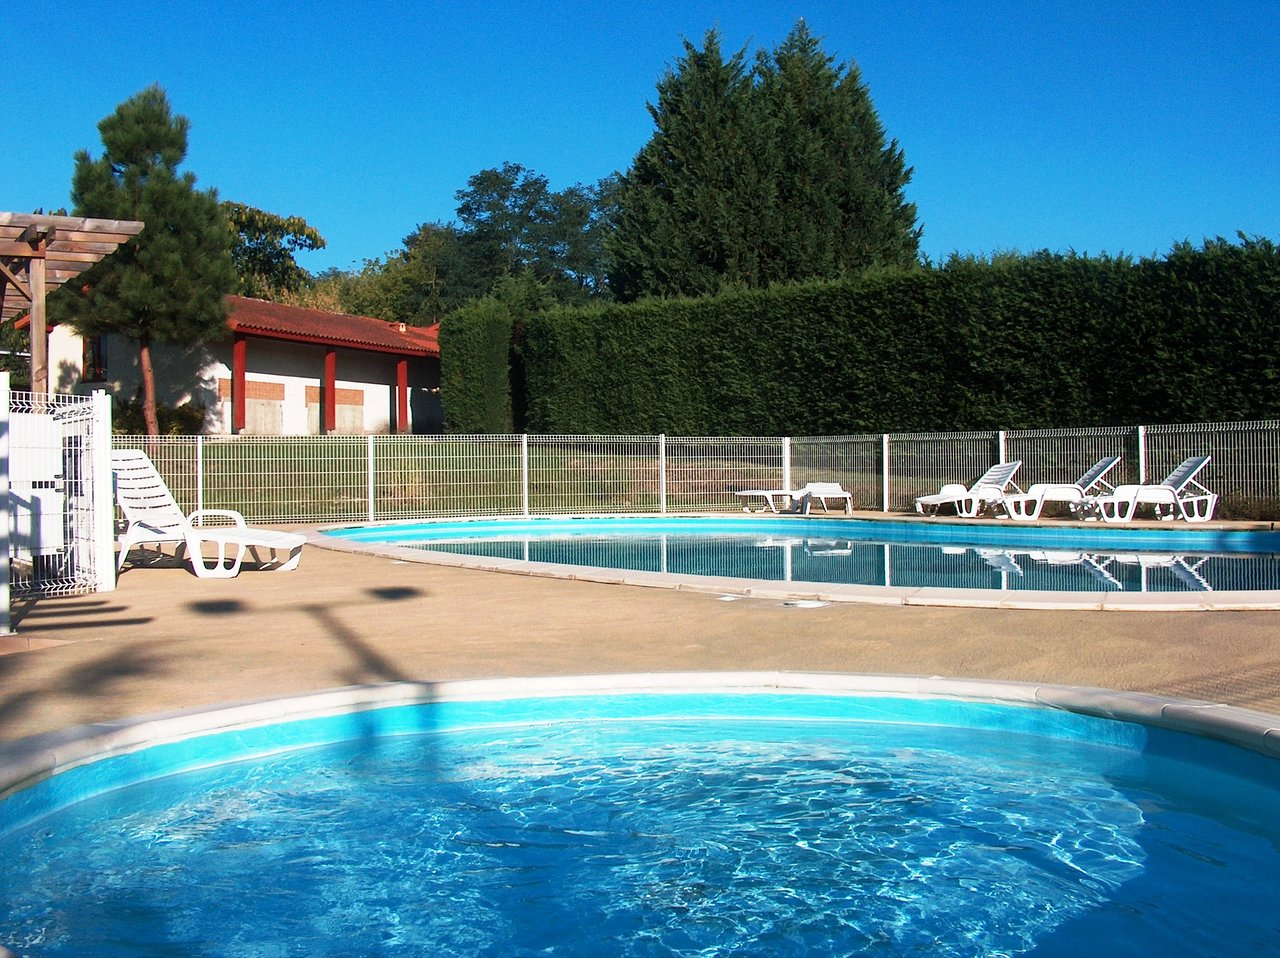 Les Jardins De L'adour - Campground Reviews (Saint-Vincent ... encequiconcerne Piscine Saint Paul Les Dax